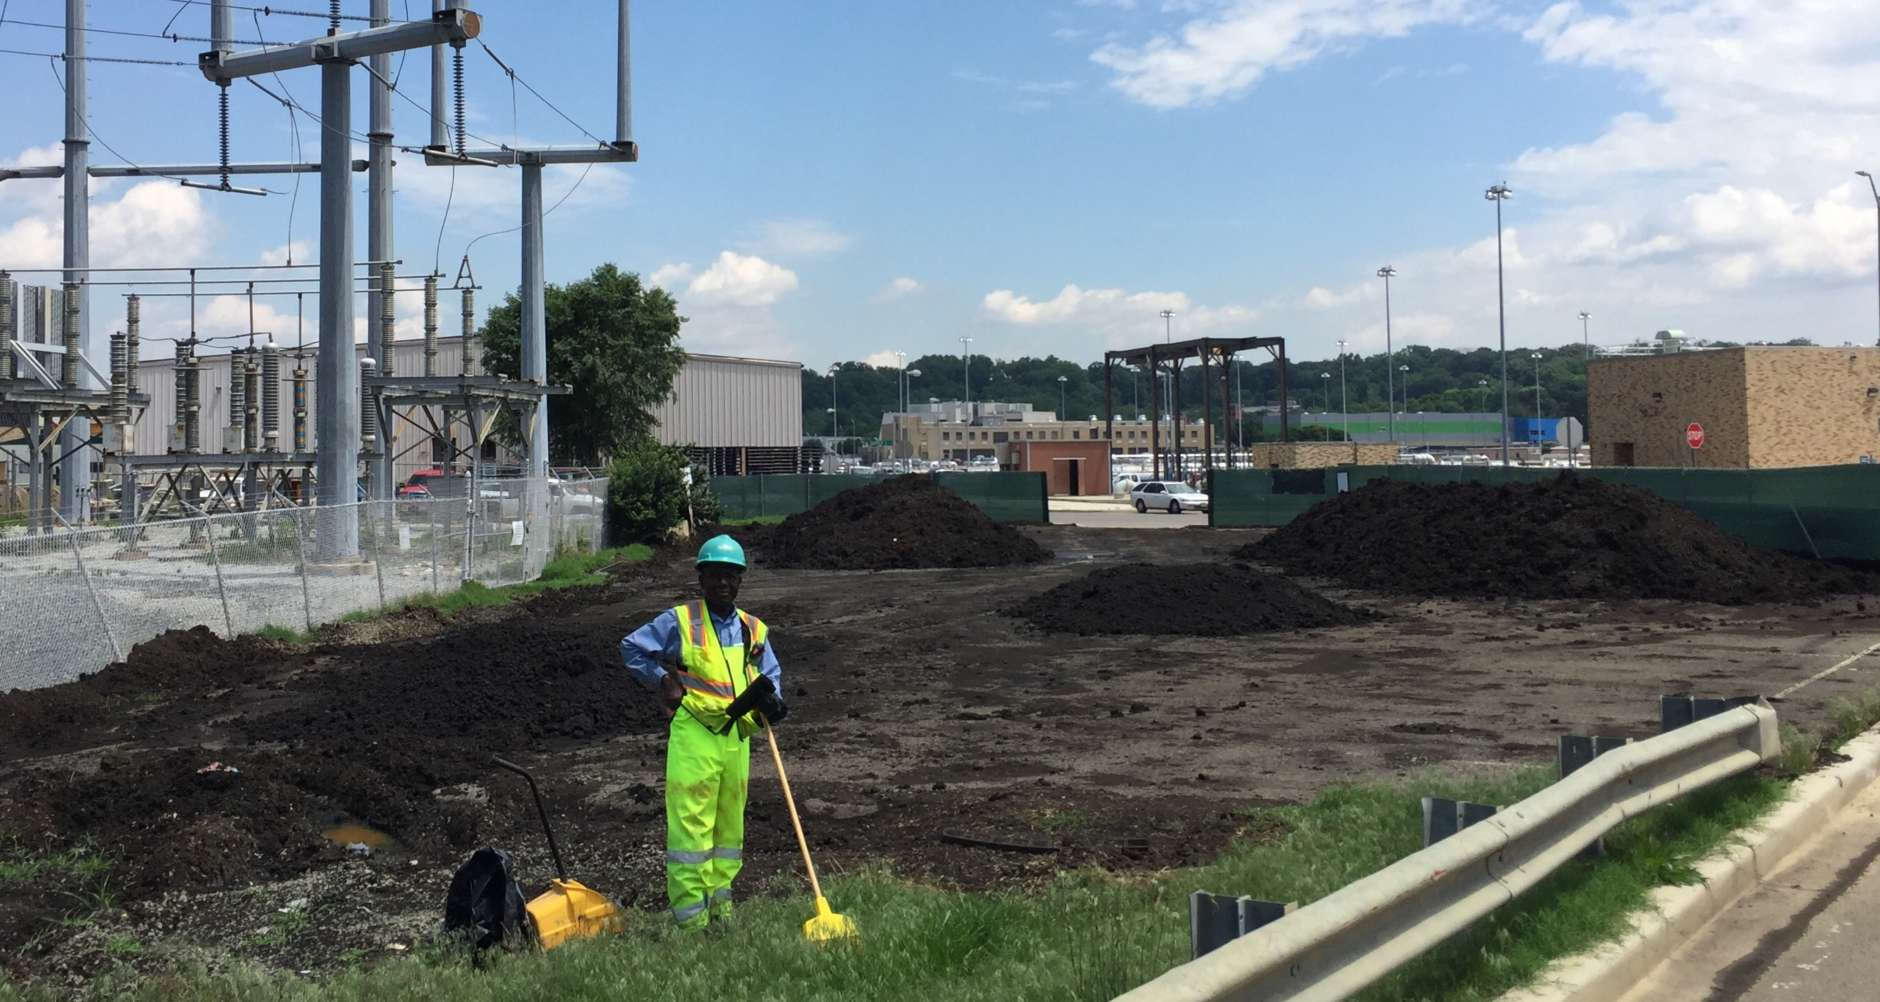 A DC Water employee works in the area where piles of Bloom are curing to remove residual odor and moisture. (WTOP/Kristi King)